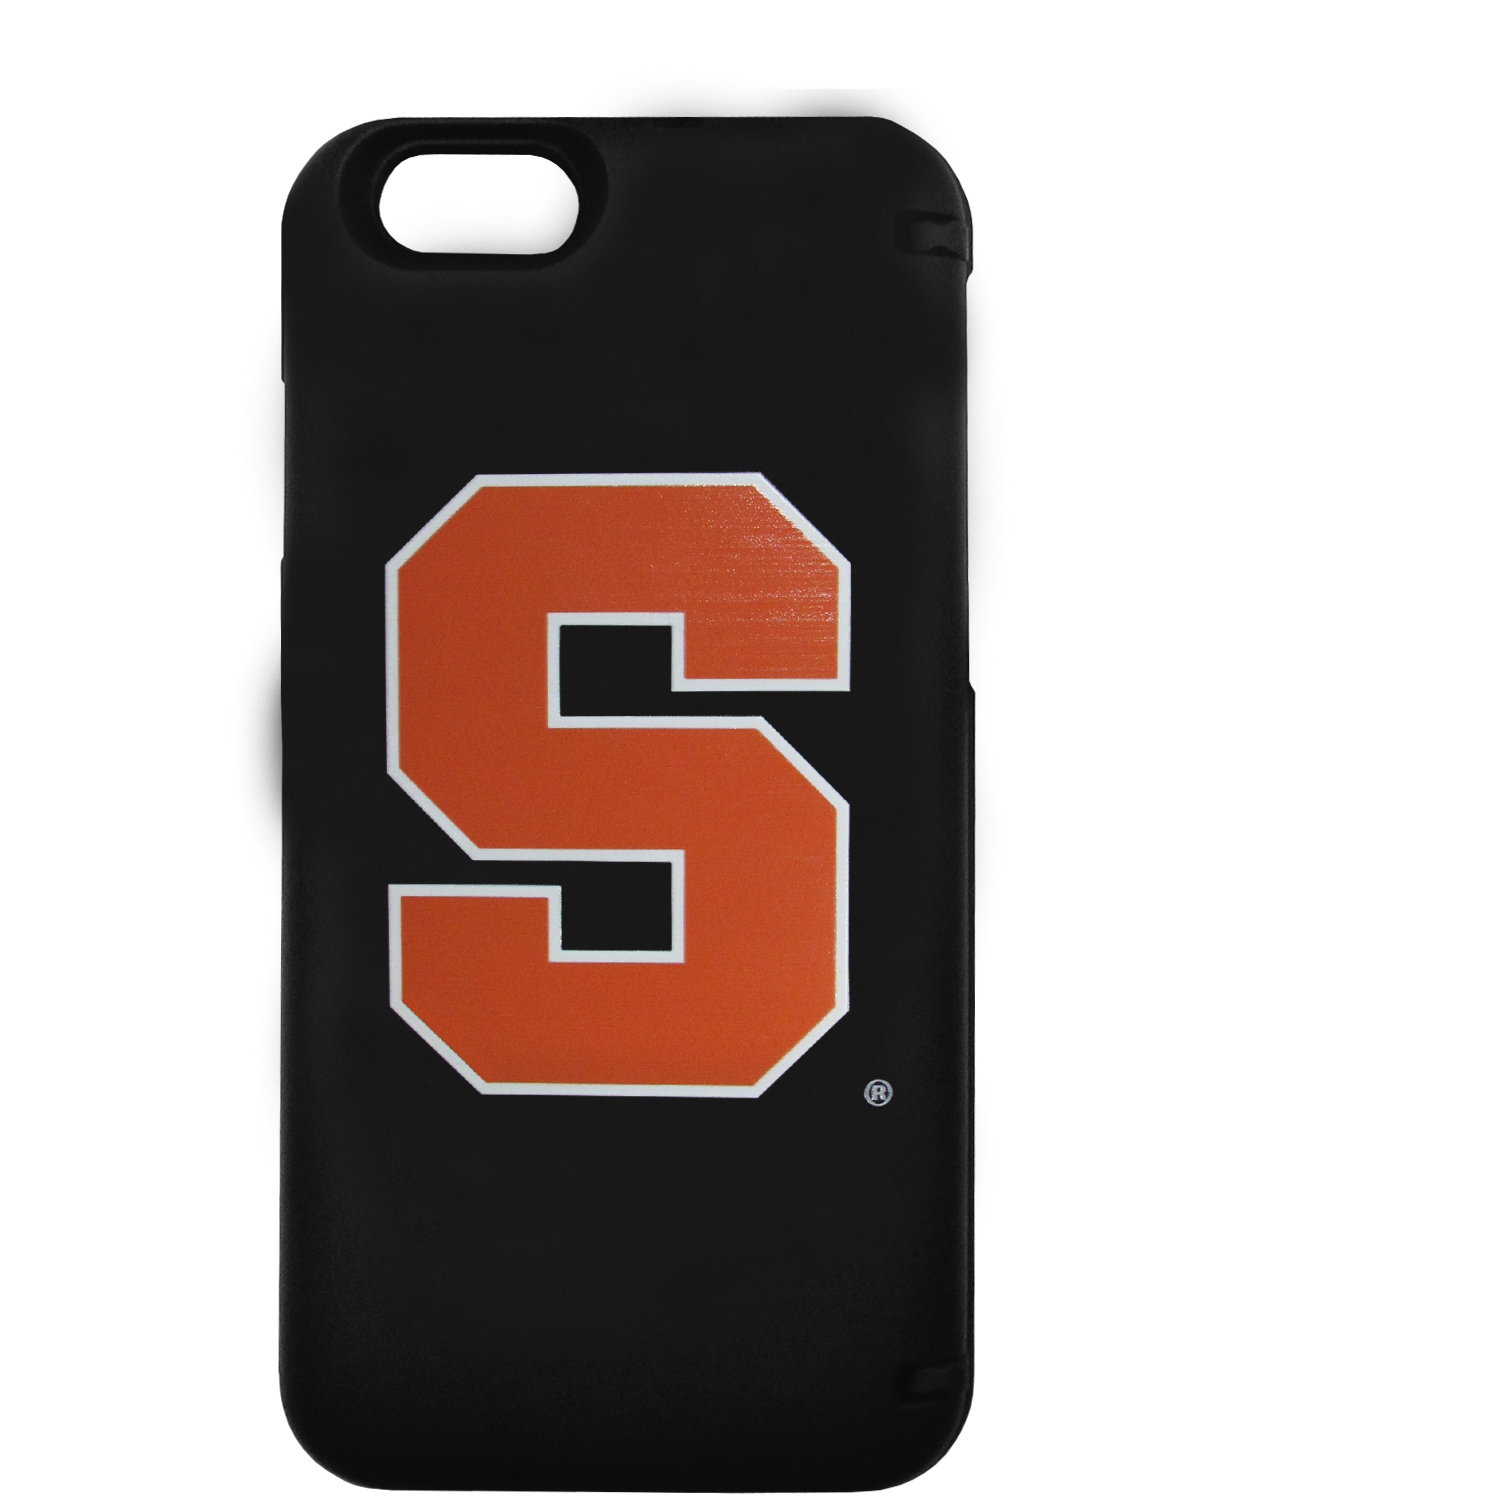 Syracuse Orange iPhone 6 Everything Case - This case really does have everything but the kitchen sink! The hidden compartment lets you keep your cards, money and tickets to the big game safe and secure and has a compact mirror so you can make sure your game face is ready to go. It also comes with a kickstand to make chatting and watching videos a breeze. The wrist strap allows you to travel with ease with your everything case. If that's not enough, it also comes with the Syracuse Orange logo printed in expert detail on the front.